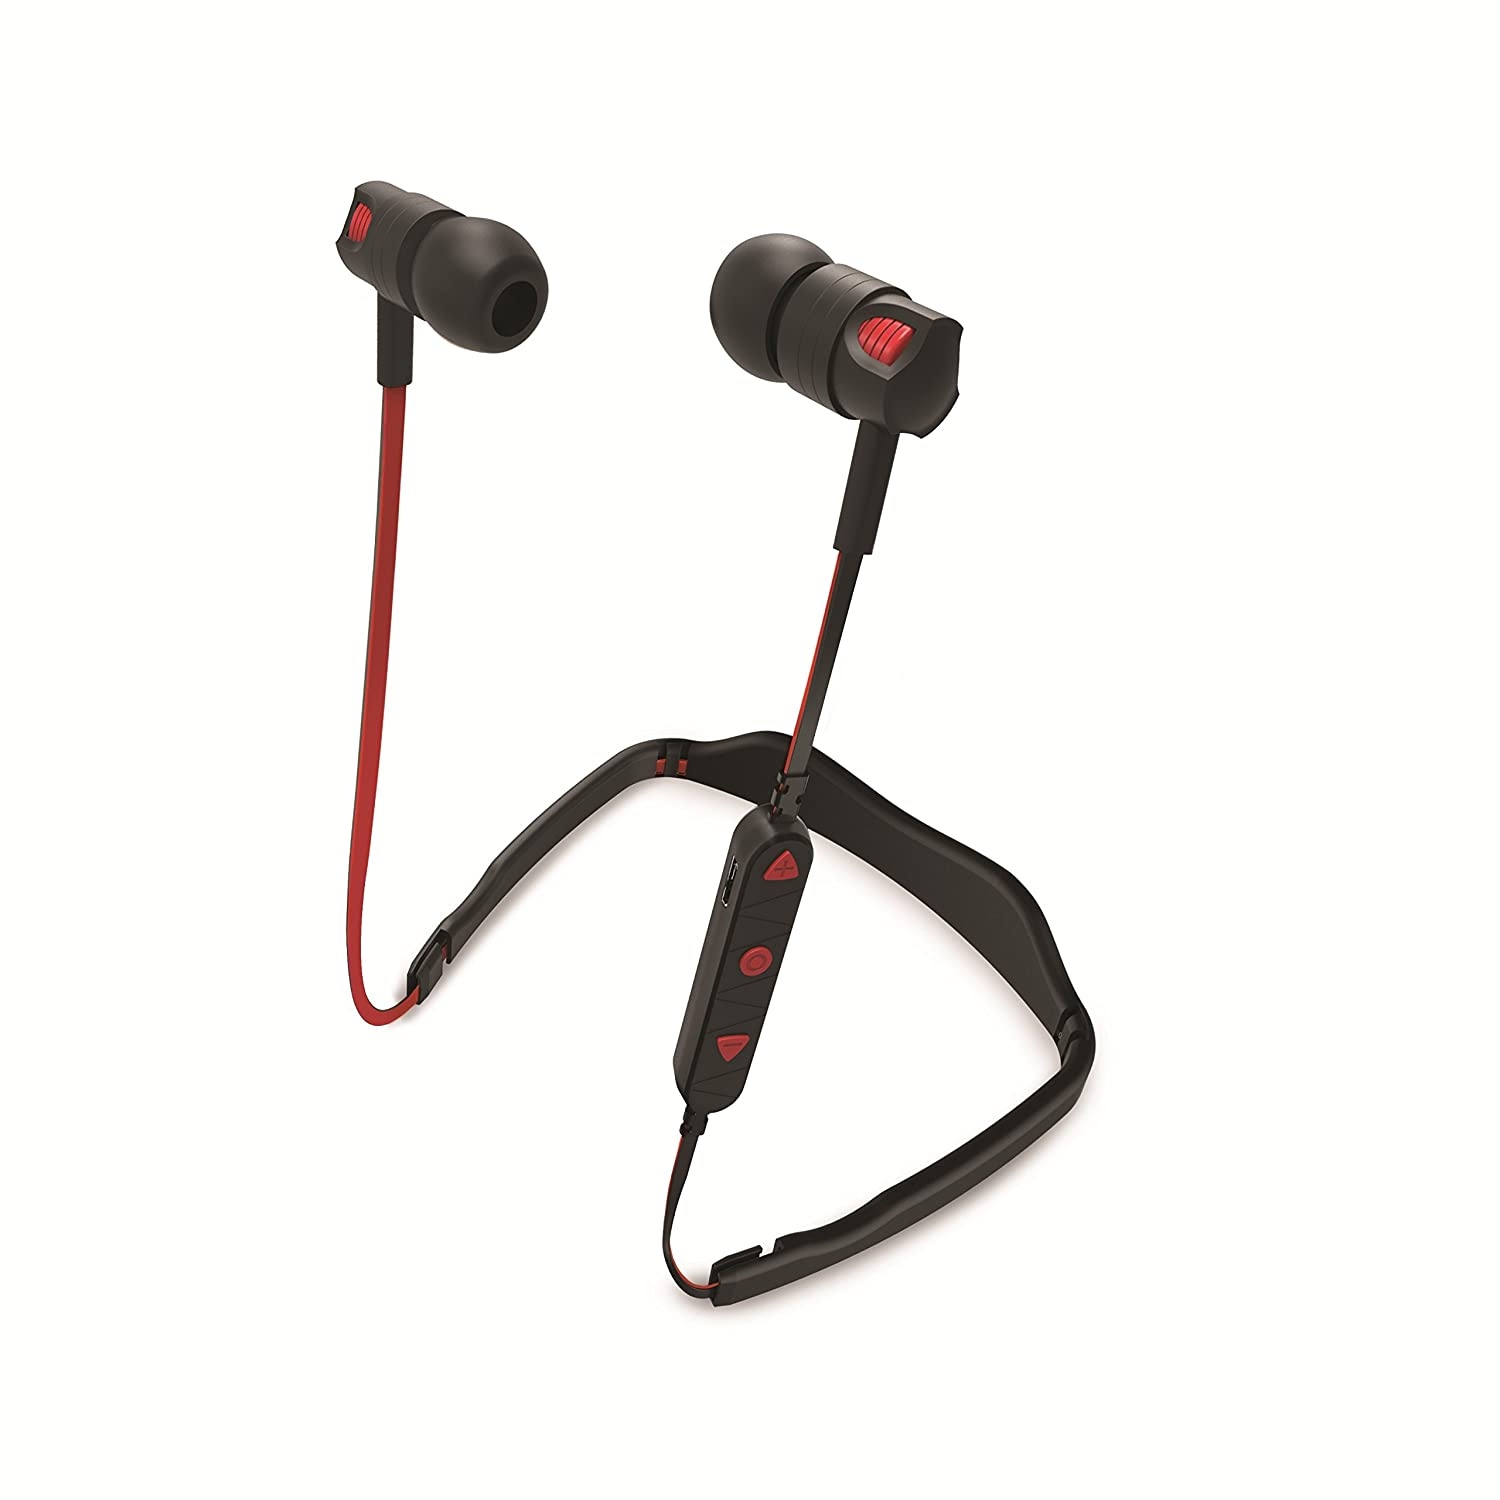 1efeff6f64b Overtime OTBTPRM-RD Wireless Bluetooth V4.2 Sports Earbuds Vent, Red:  Headsets: Amazon.com.au